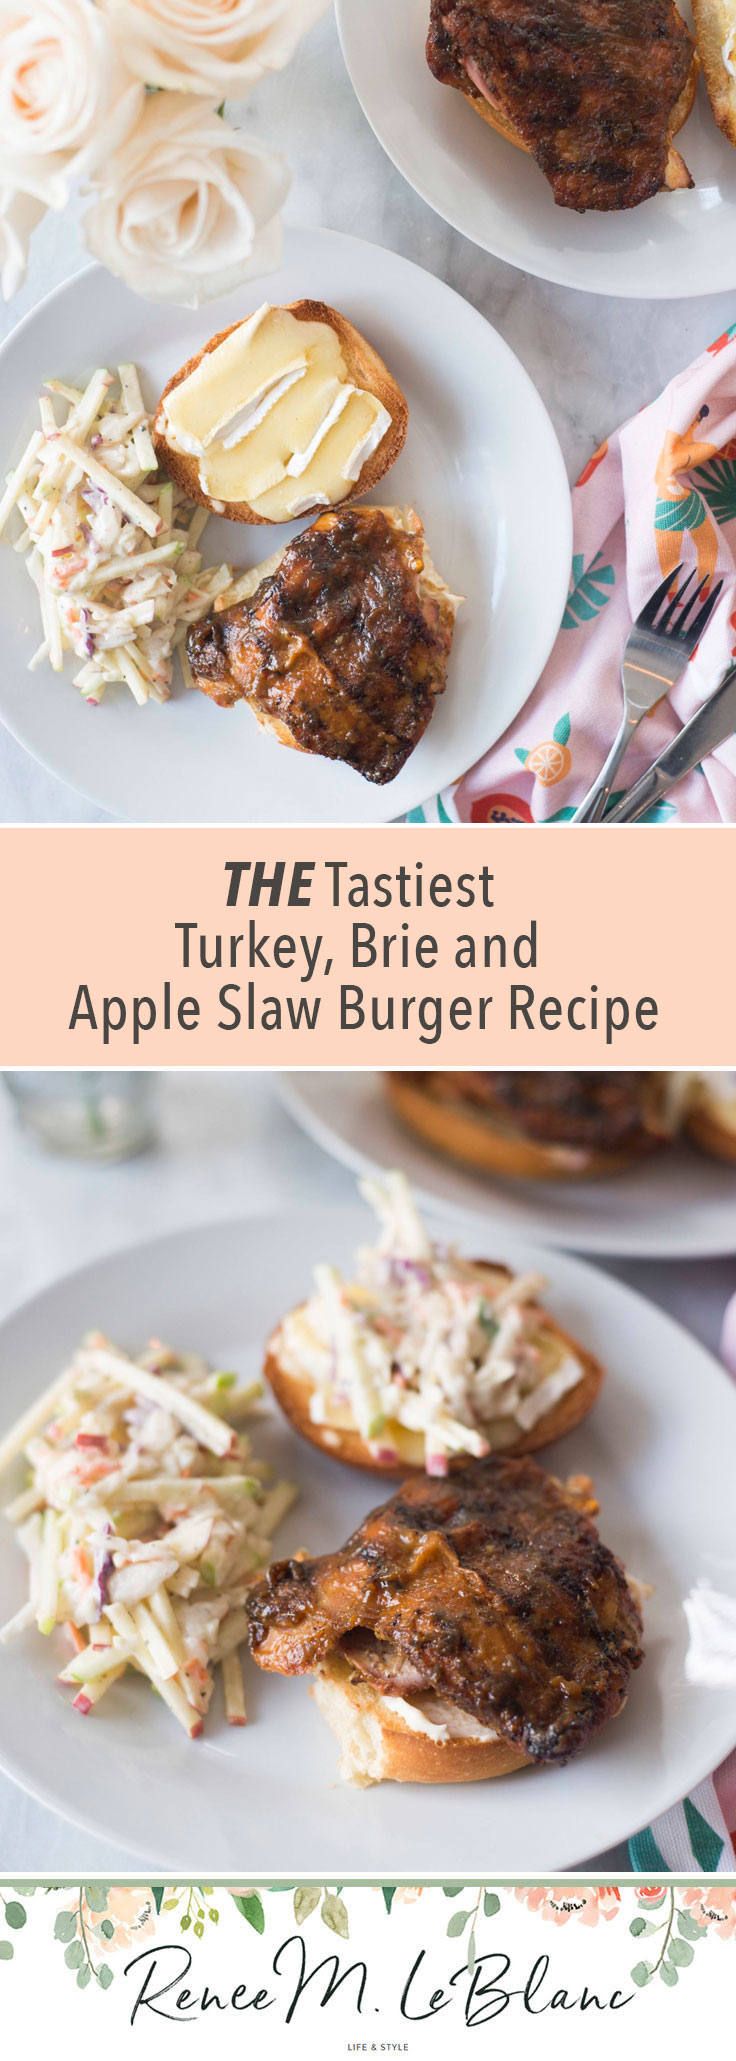 Super Tasty Turkey Sandwich with Brie and Apple Slaw